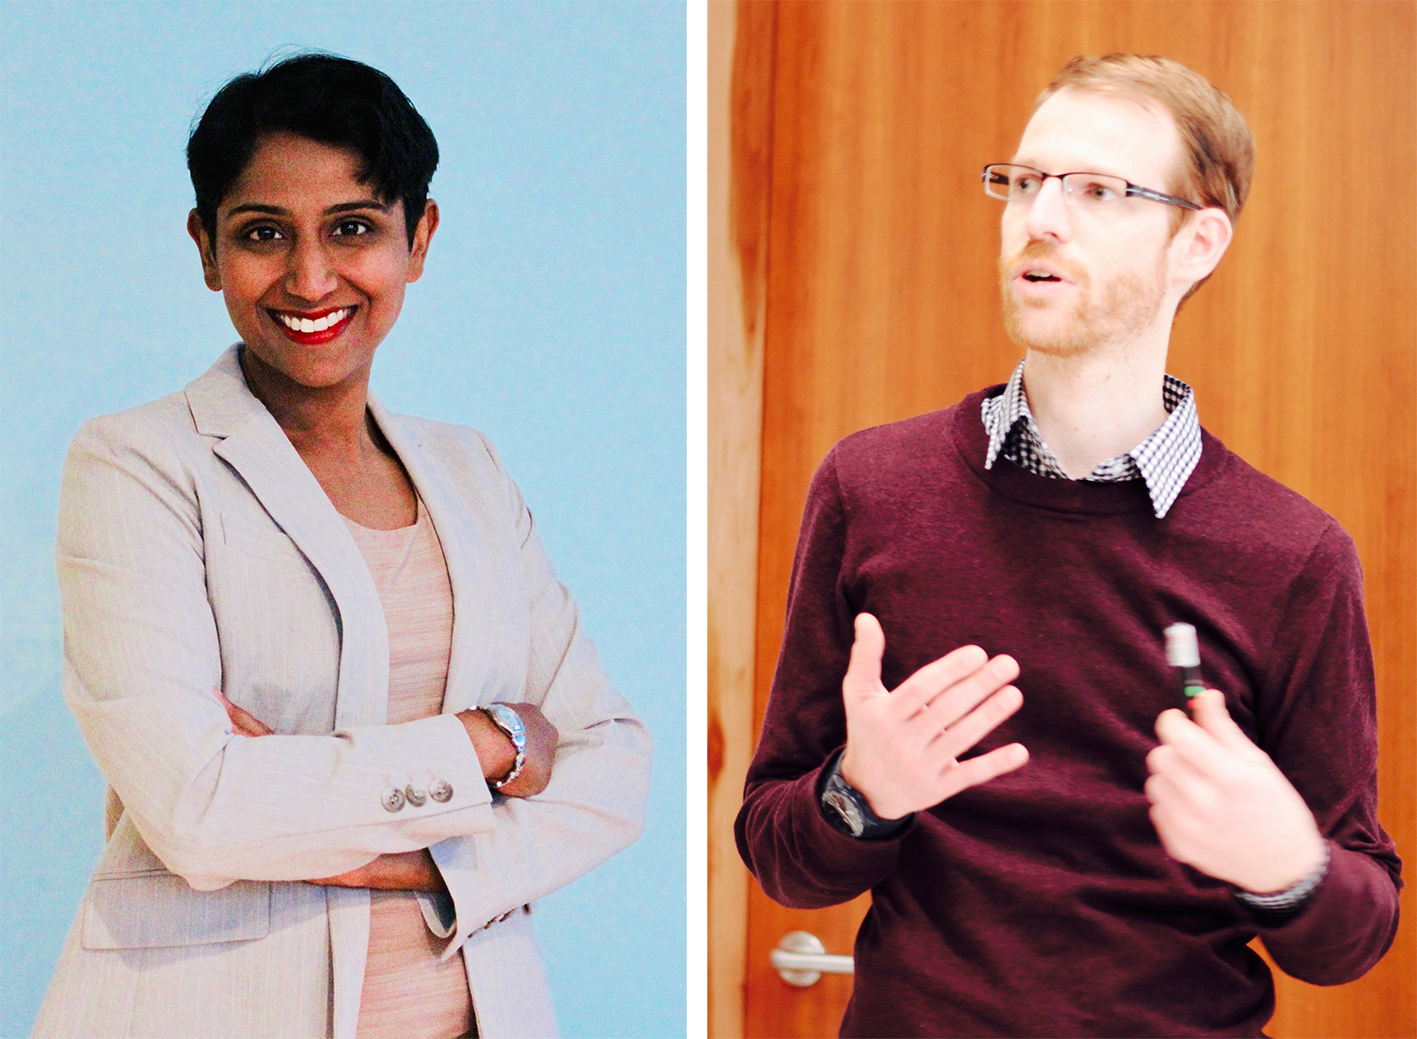 shraddha pai and michael aregger